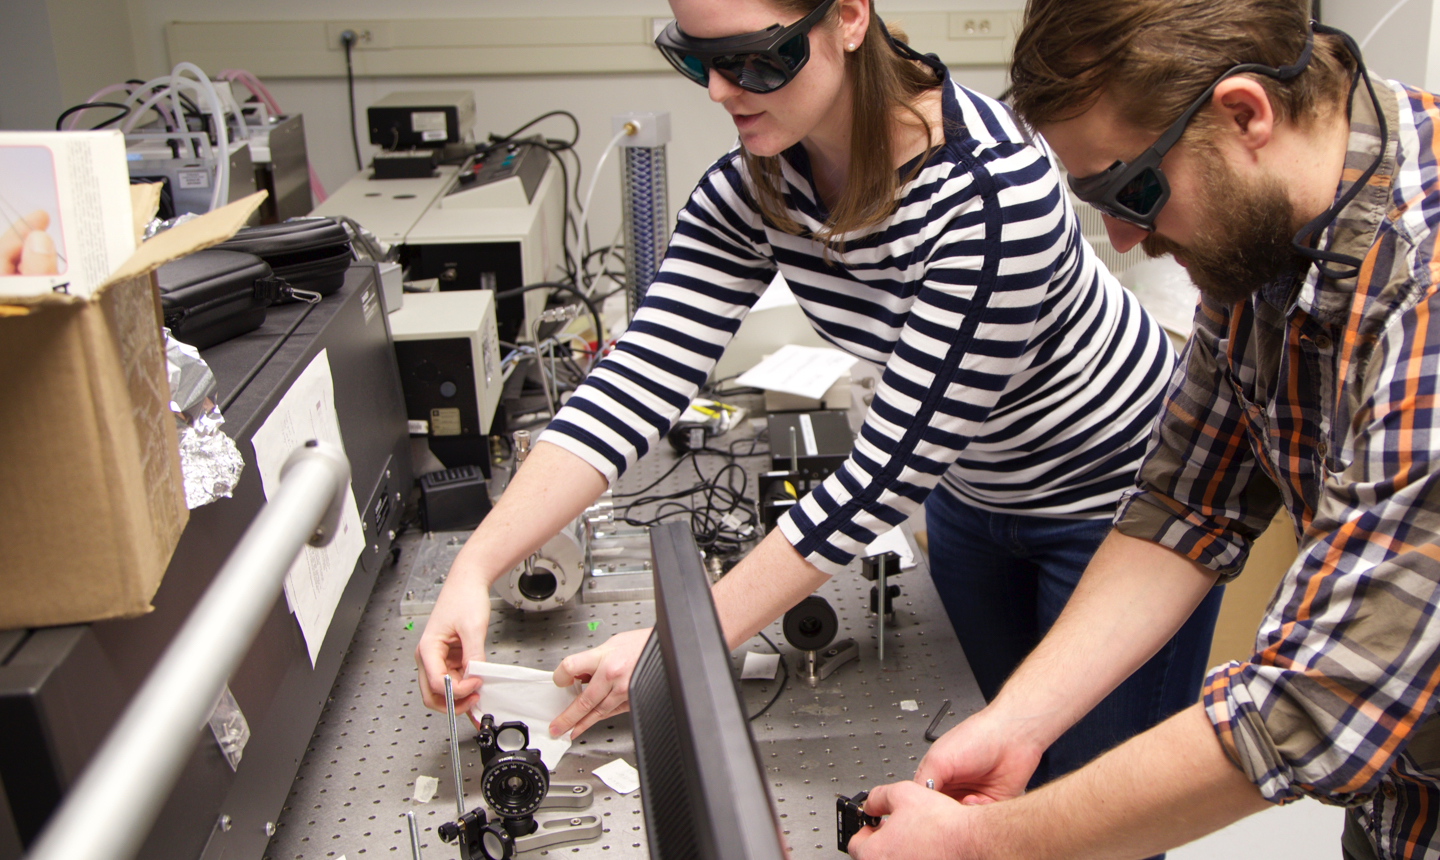 Male and female students wearing protective eyewear setting up a Chemisty experiment at a bench